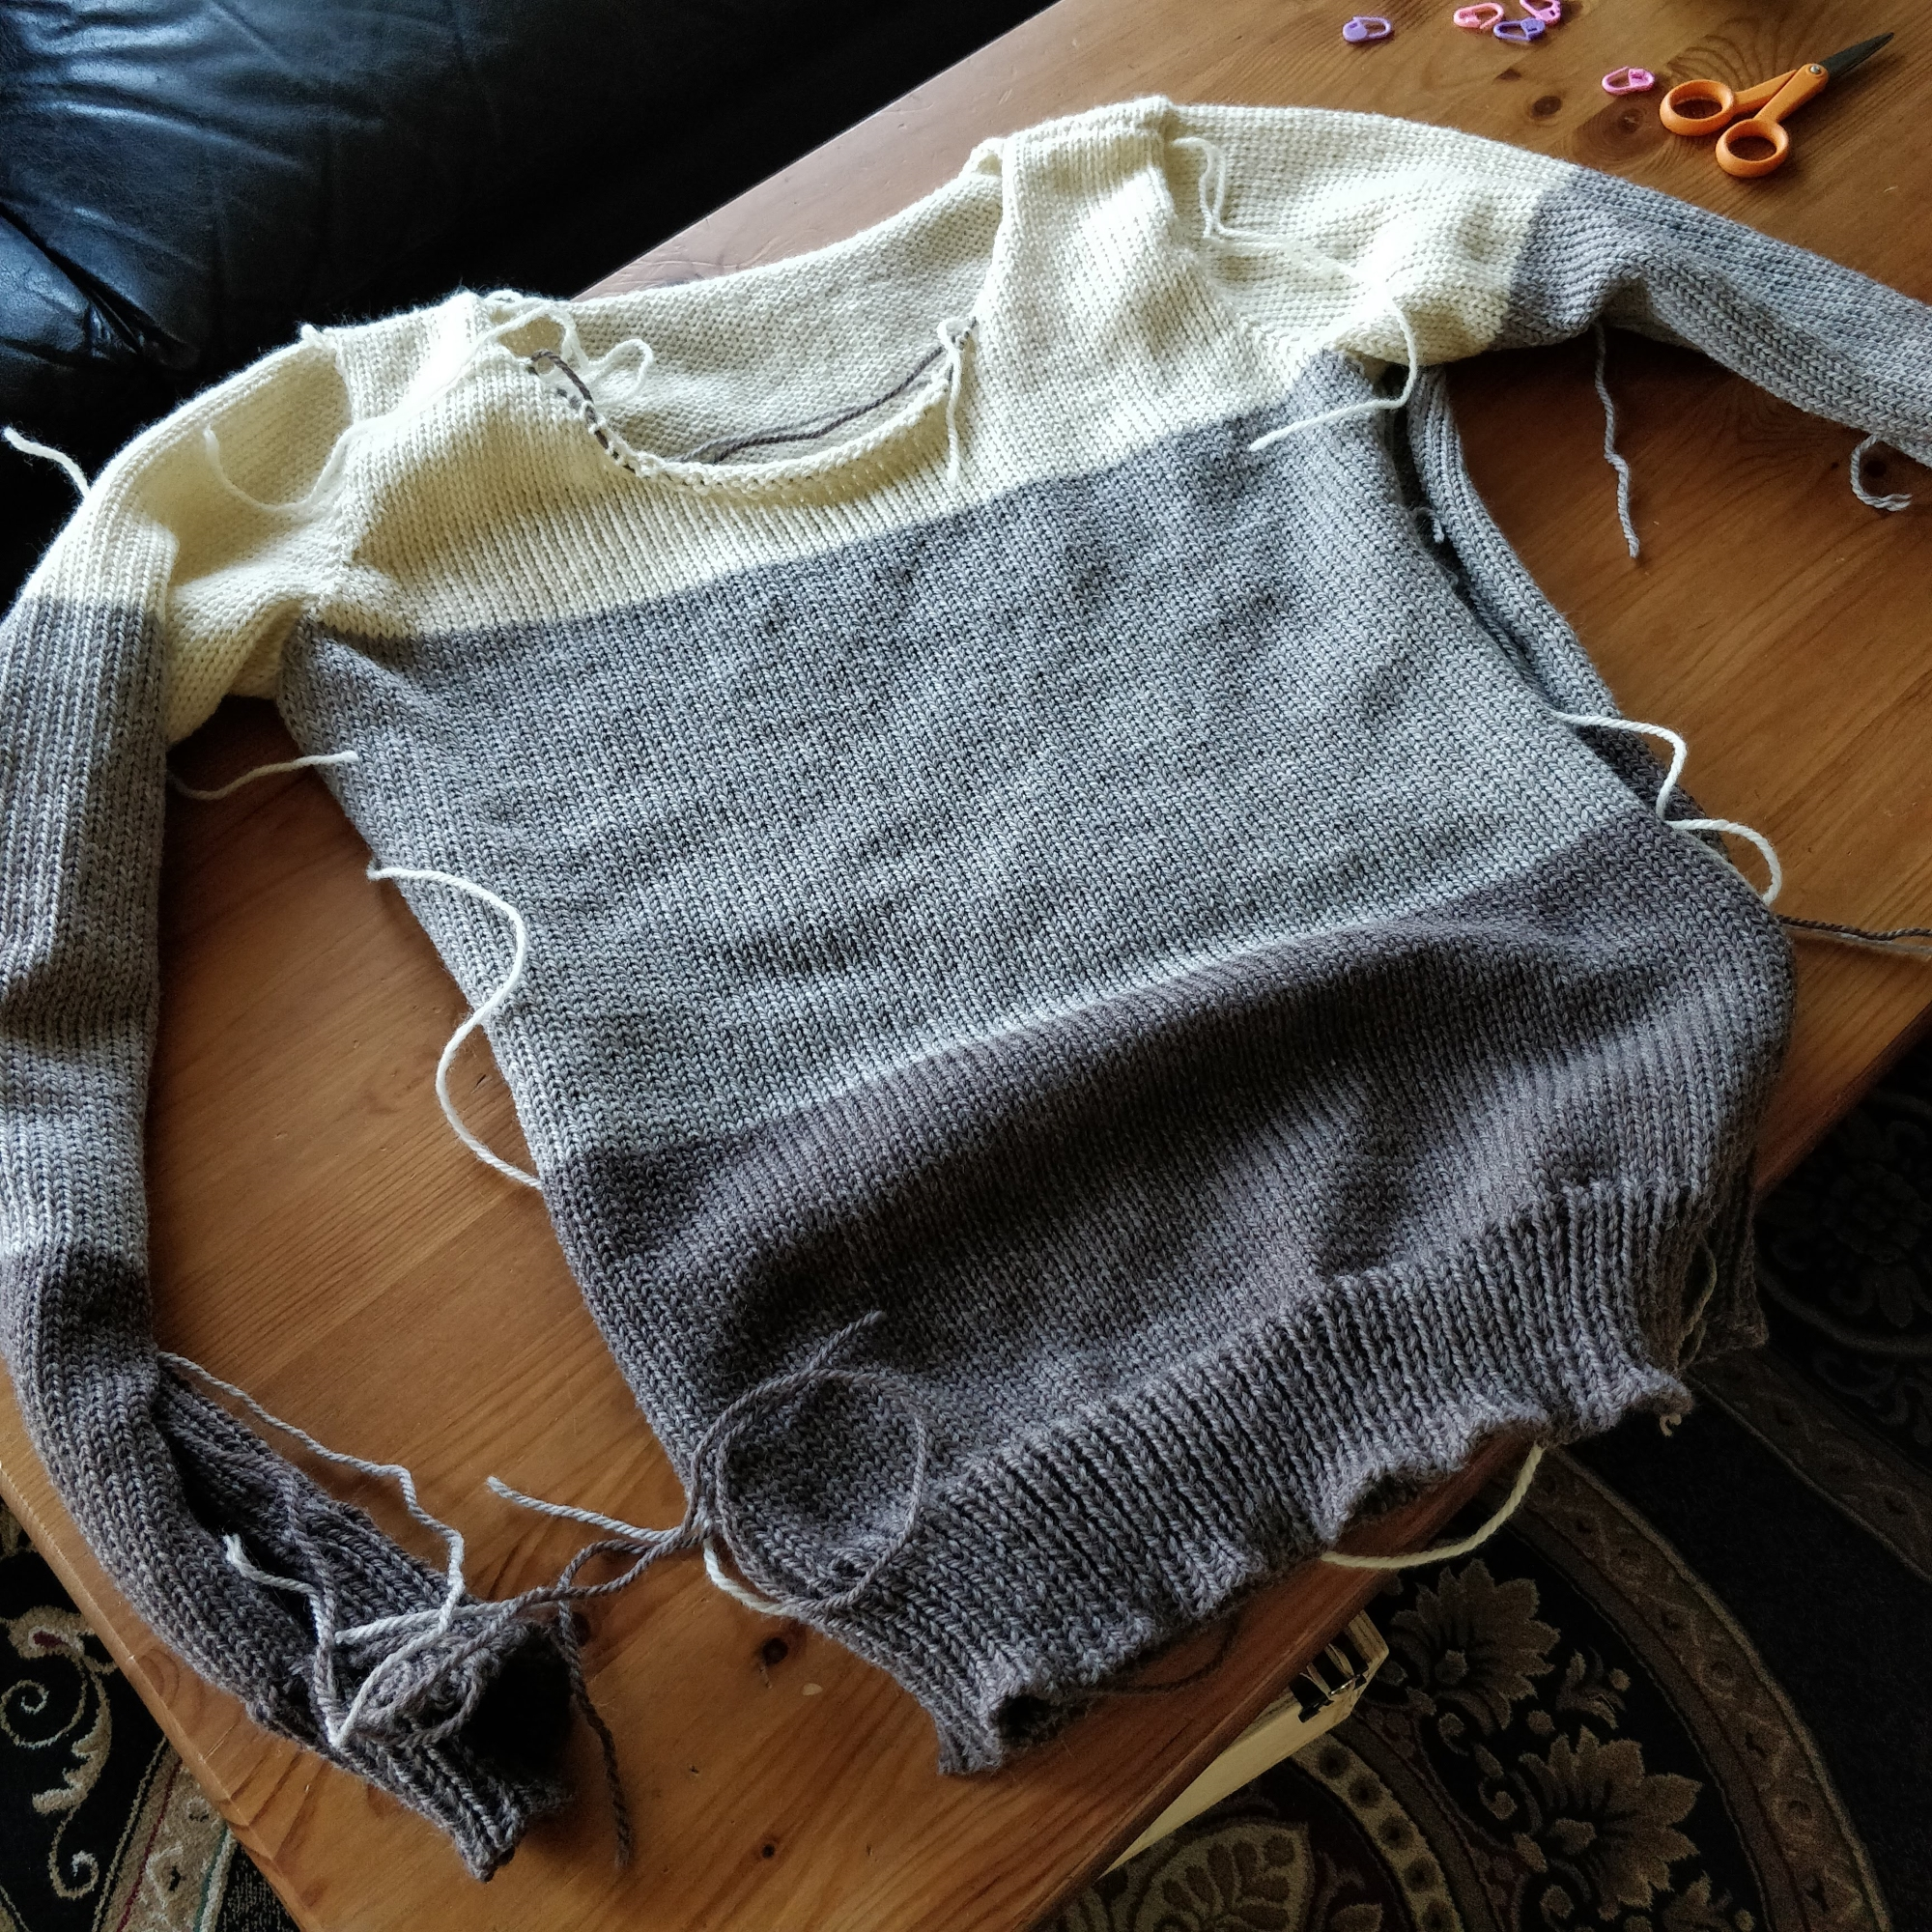 A colourblock sweater - cream at the top, light grayish tan in the middle, and darker brown at the bottom - in the process of being sewn together. The side seams are still undone.